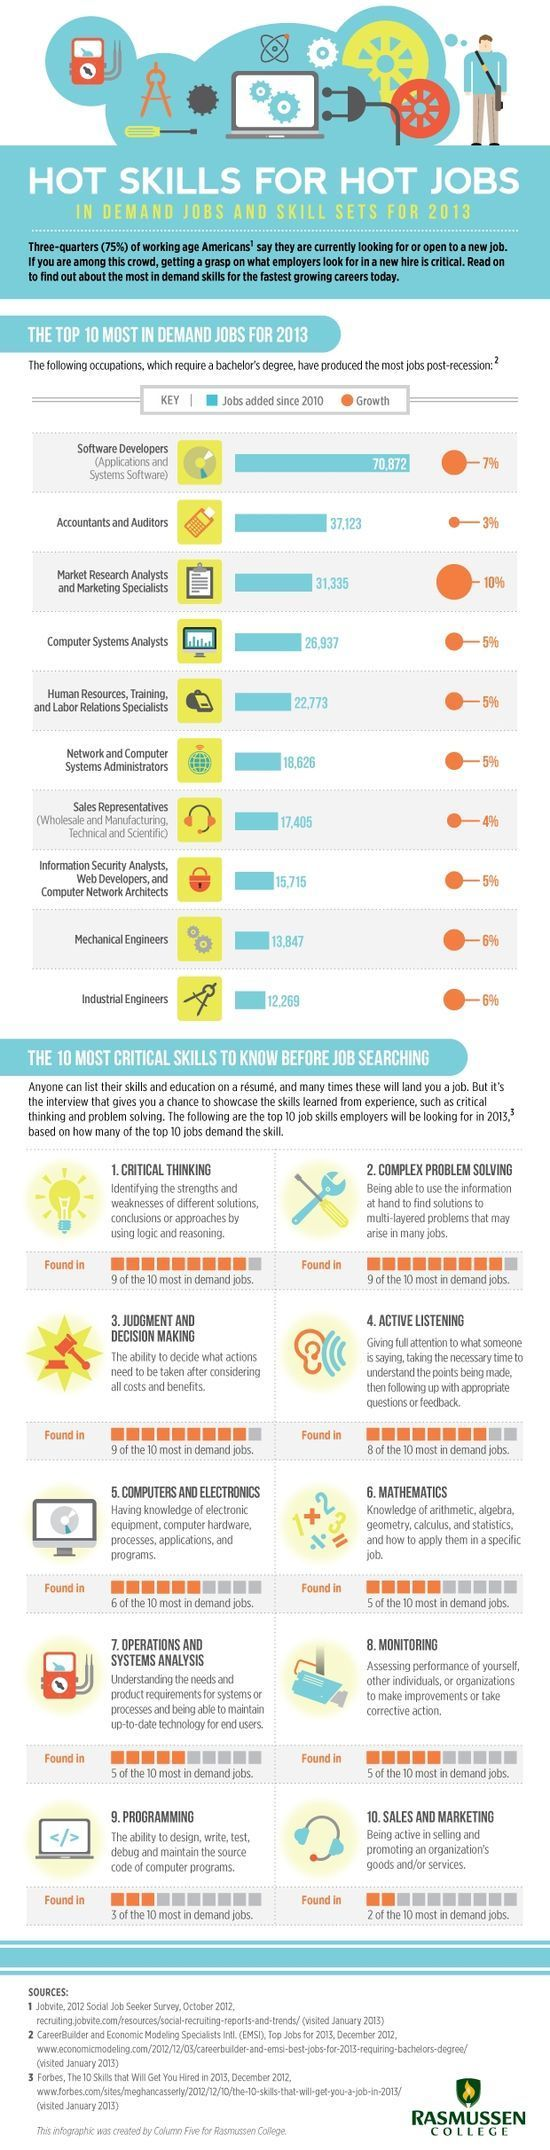 best images about essential soft skills in demand jobs and skill sets